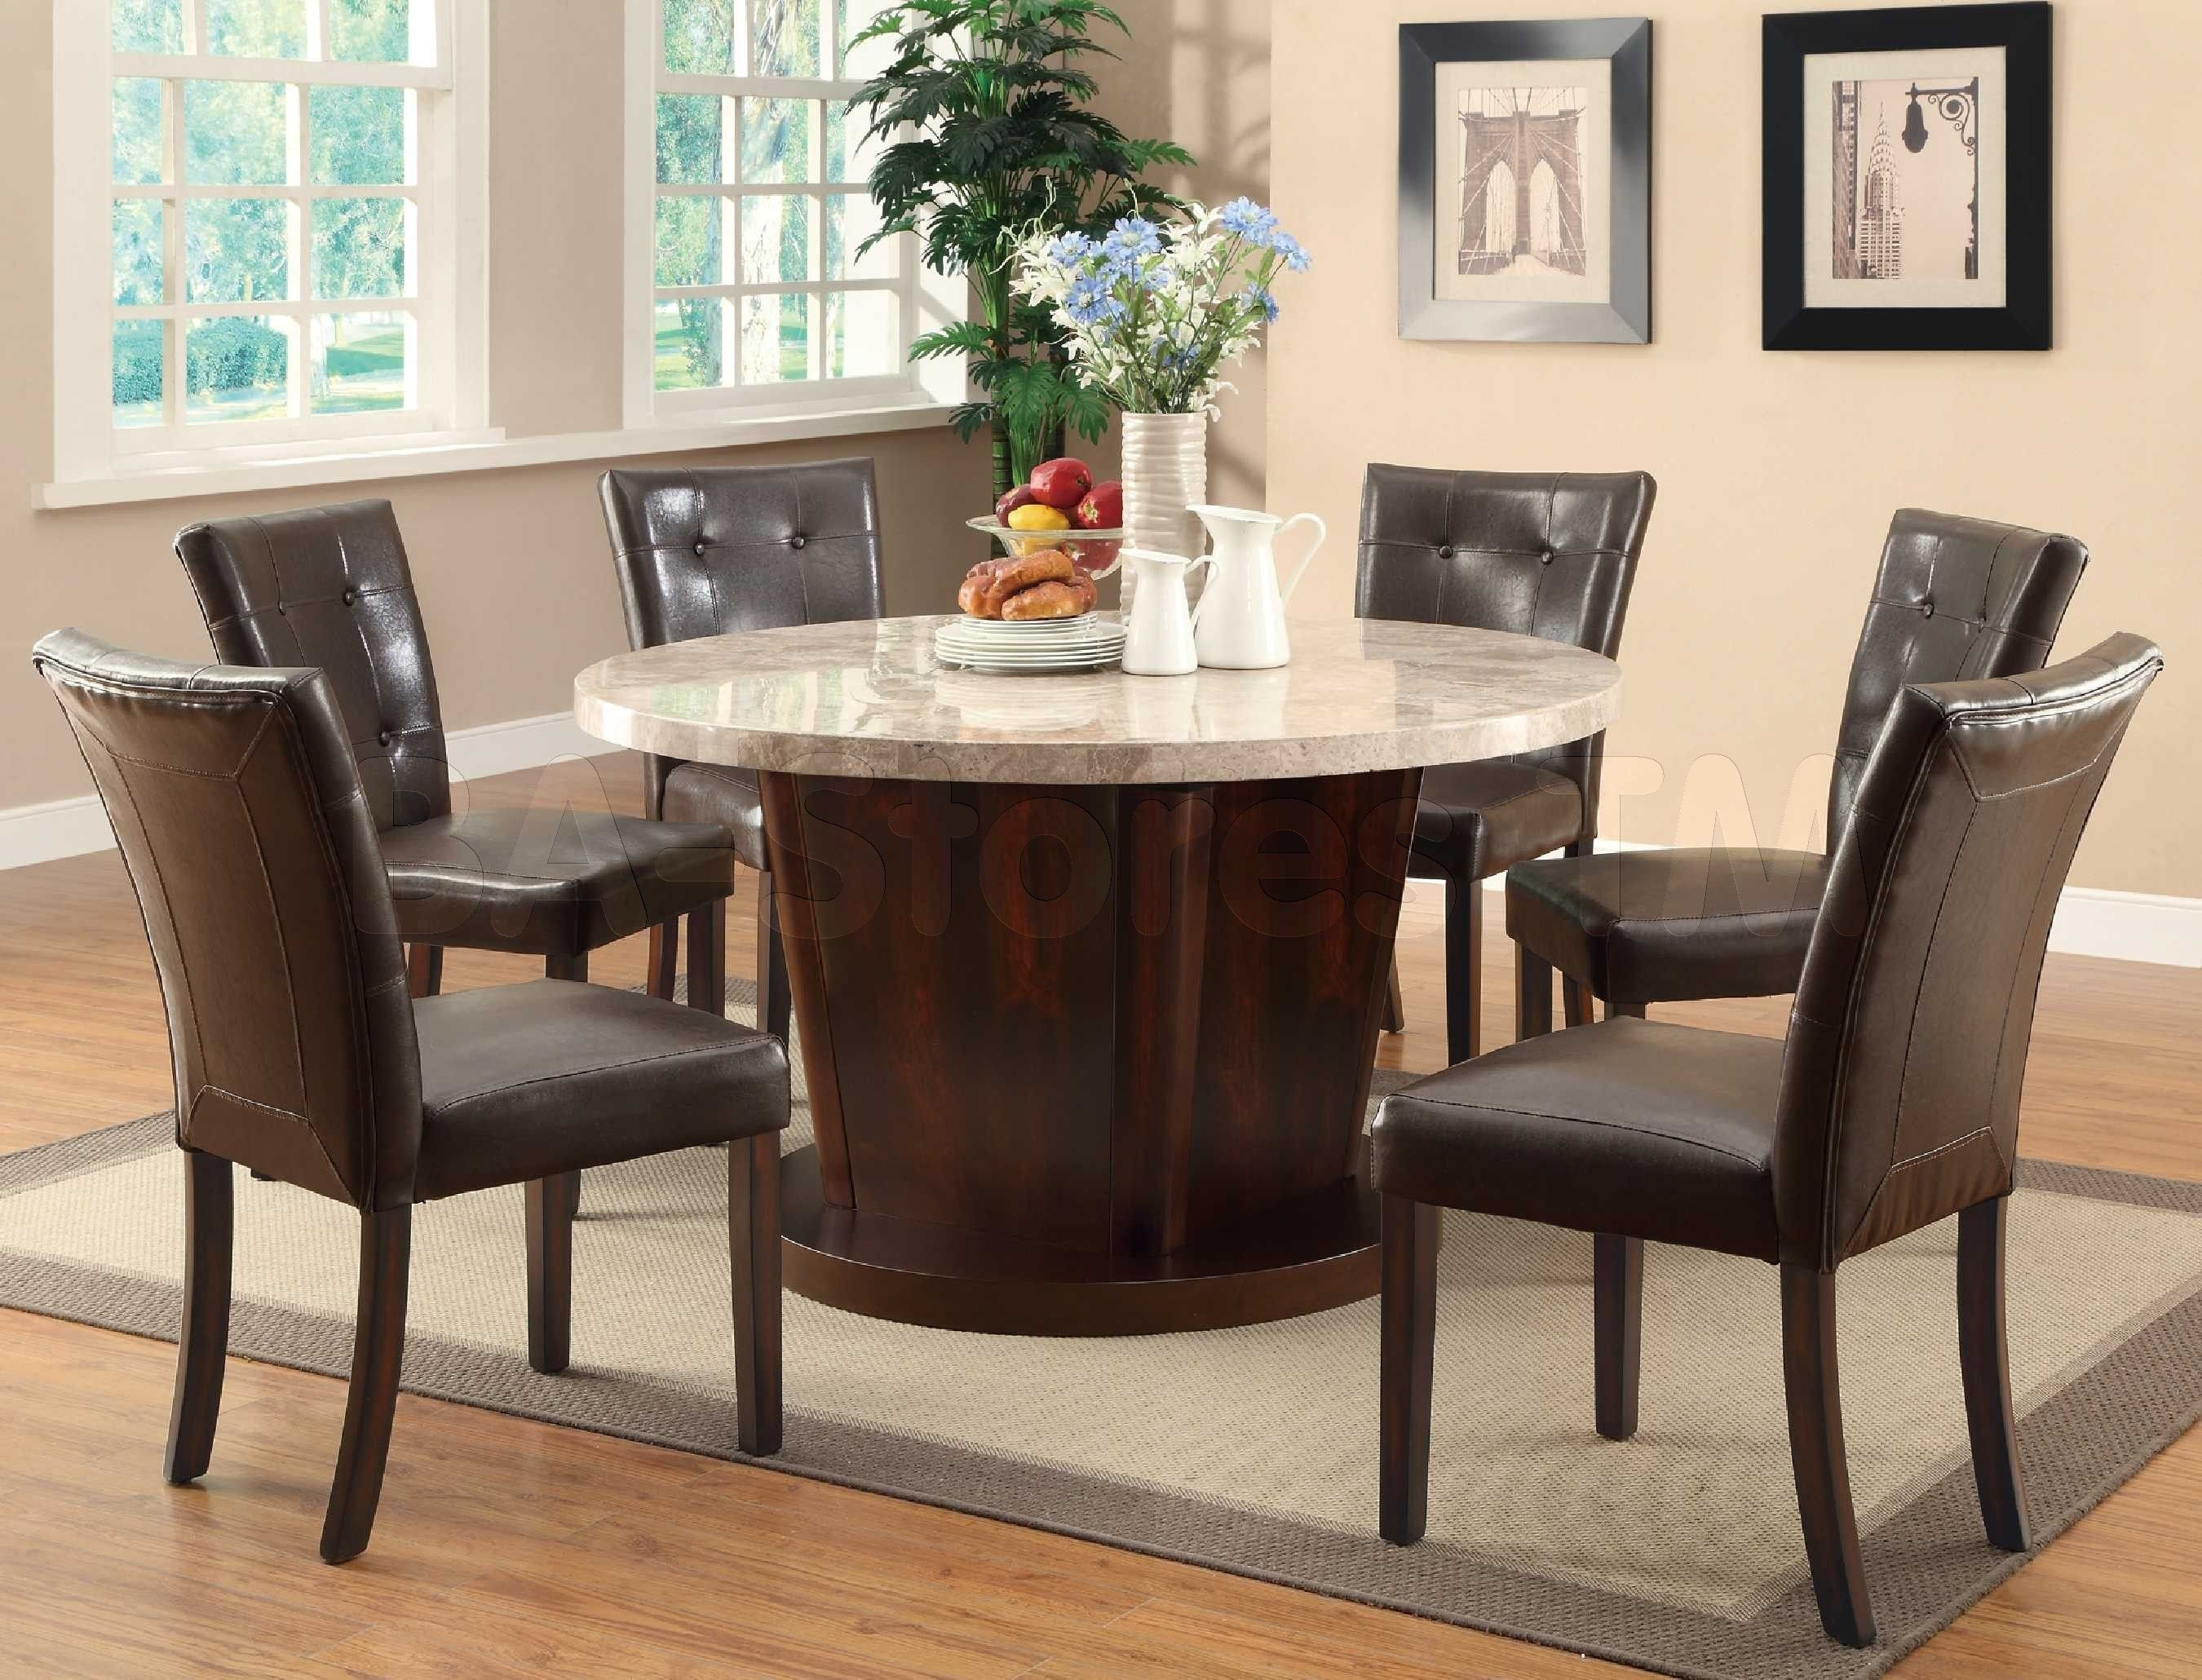 Lowcost Dining Room Tables Dishy Room Tables Cheap Prices Dining Vs Ideas Centerpiece